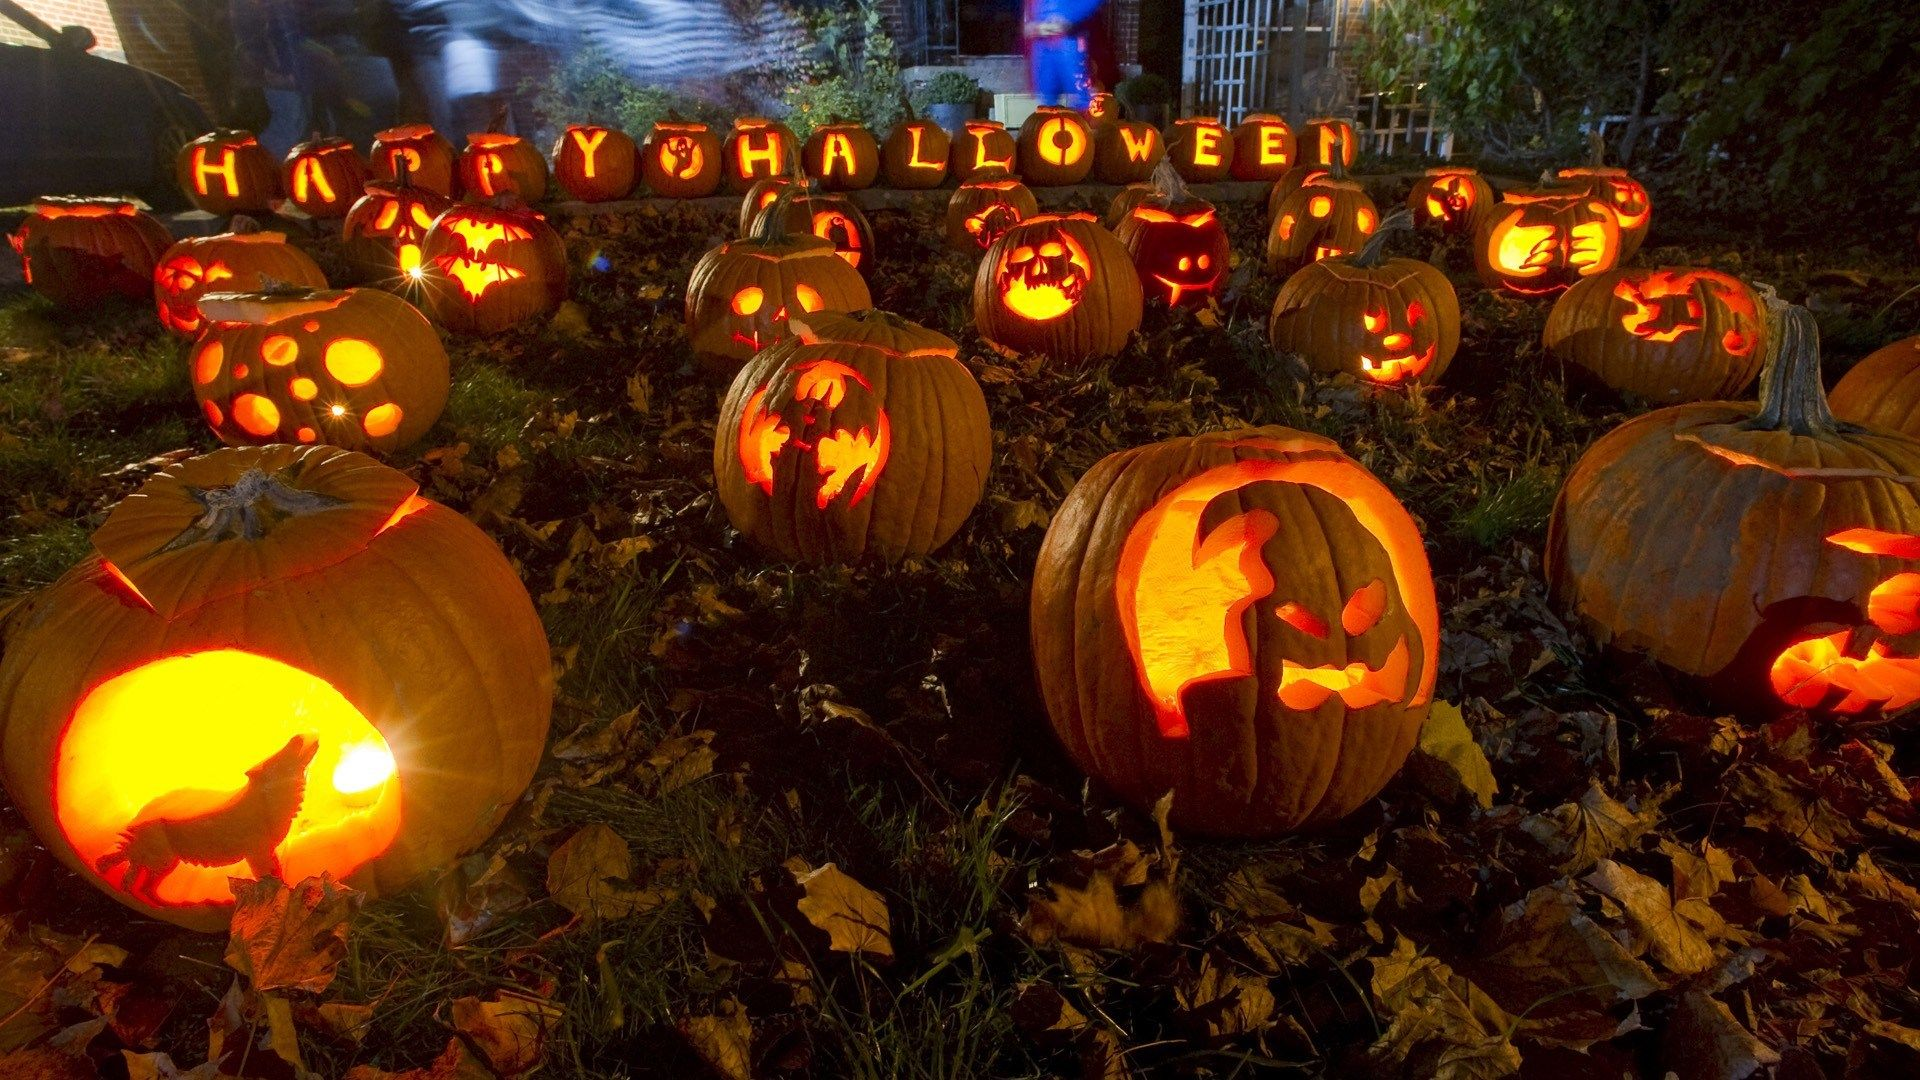 1920x1080 Halloween Hd Wallpapers 1080p Windows Jpg 523 Kb Halloween Wallpaper Halloween Party Night Pumpkin Wallpaper